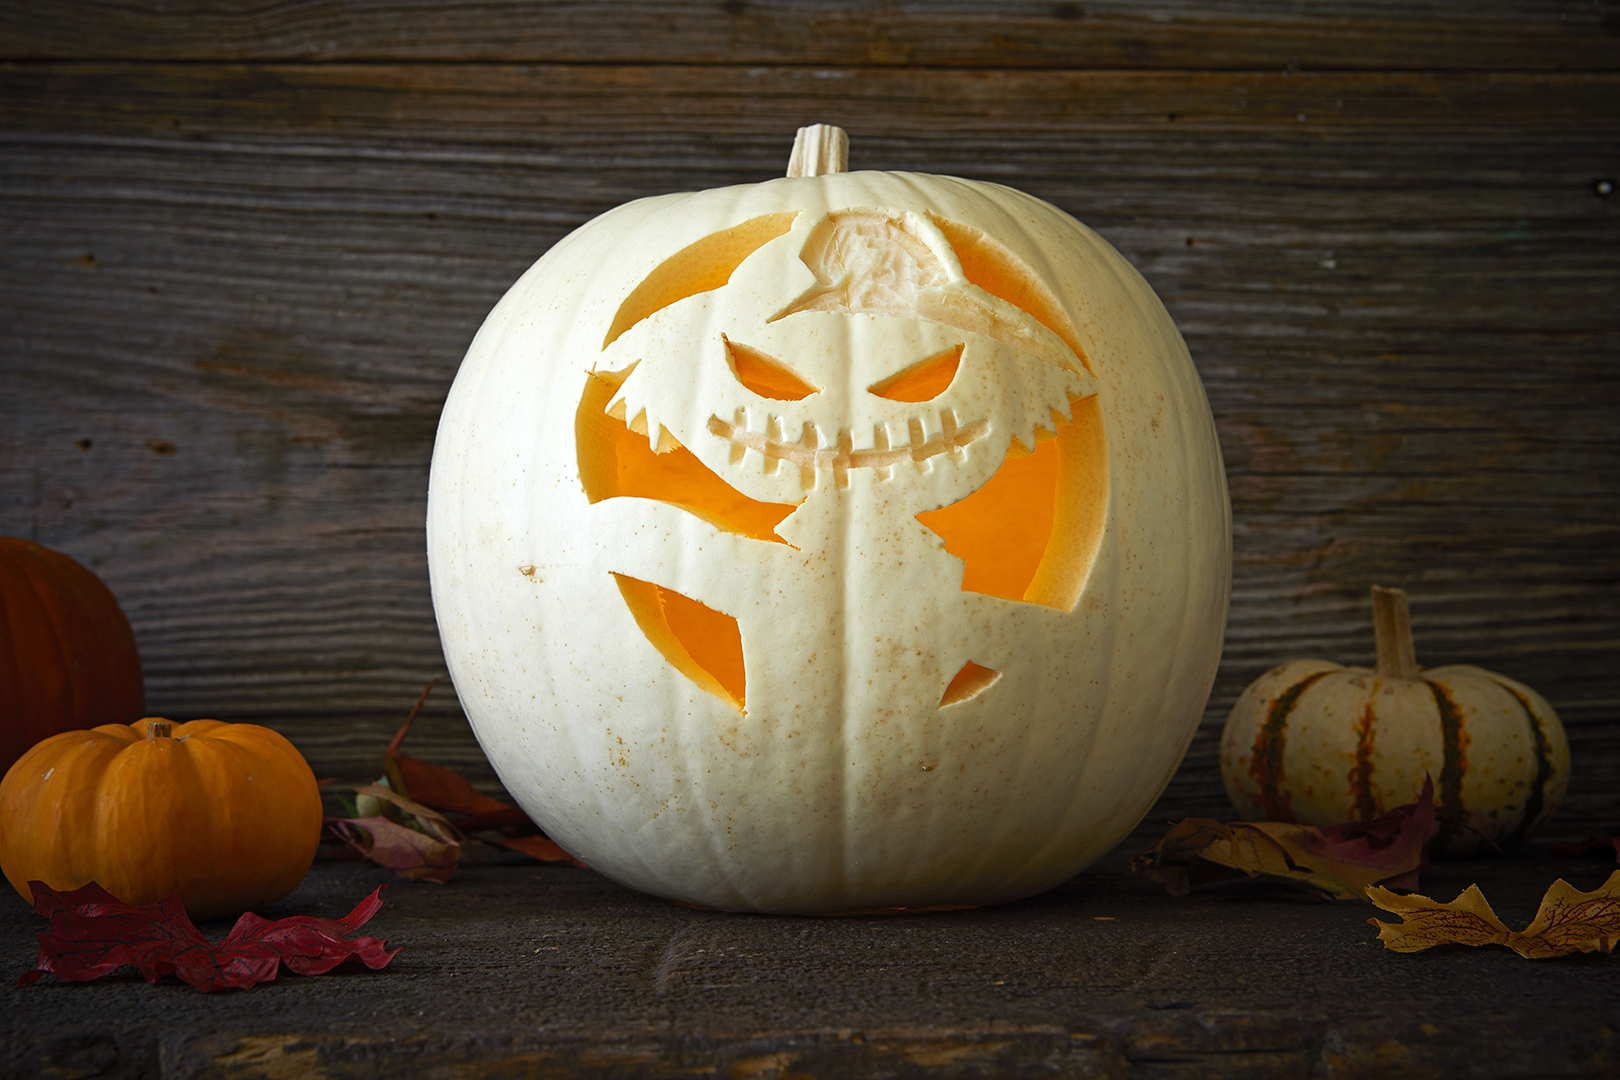 gremlin with hat carved into pumpkin